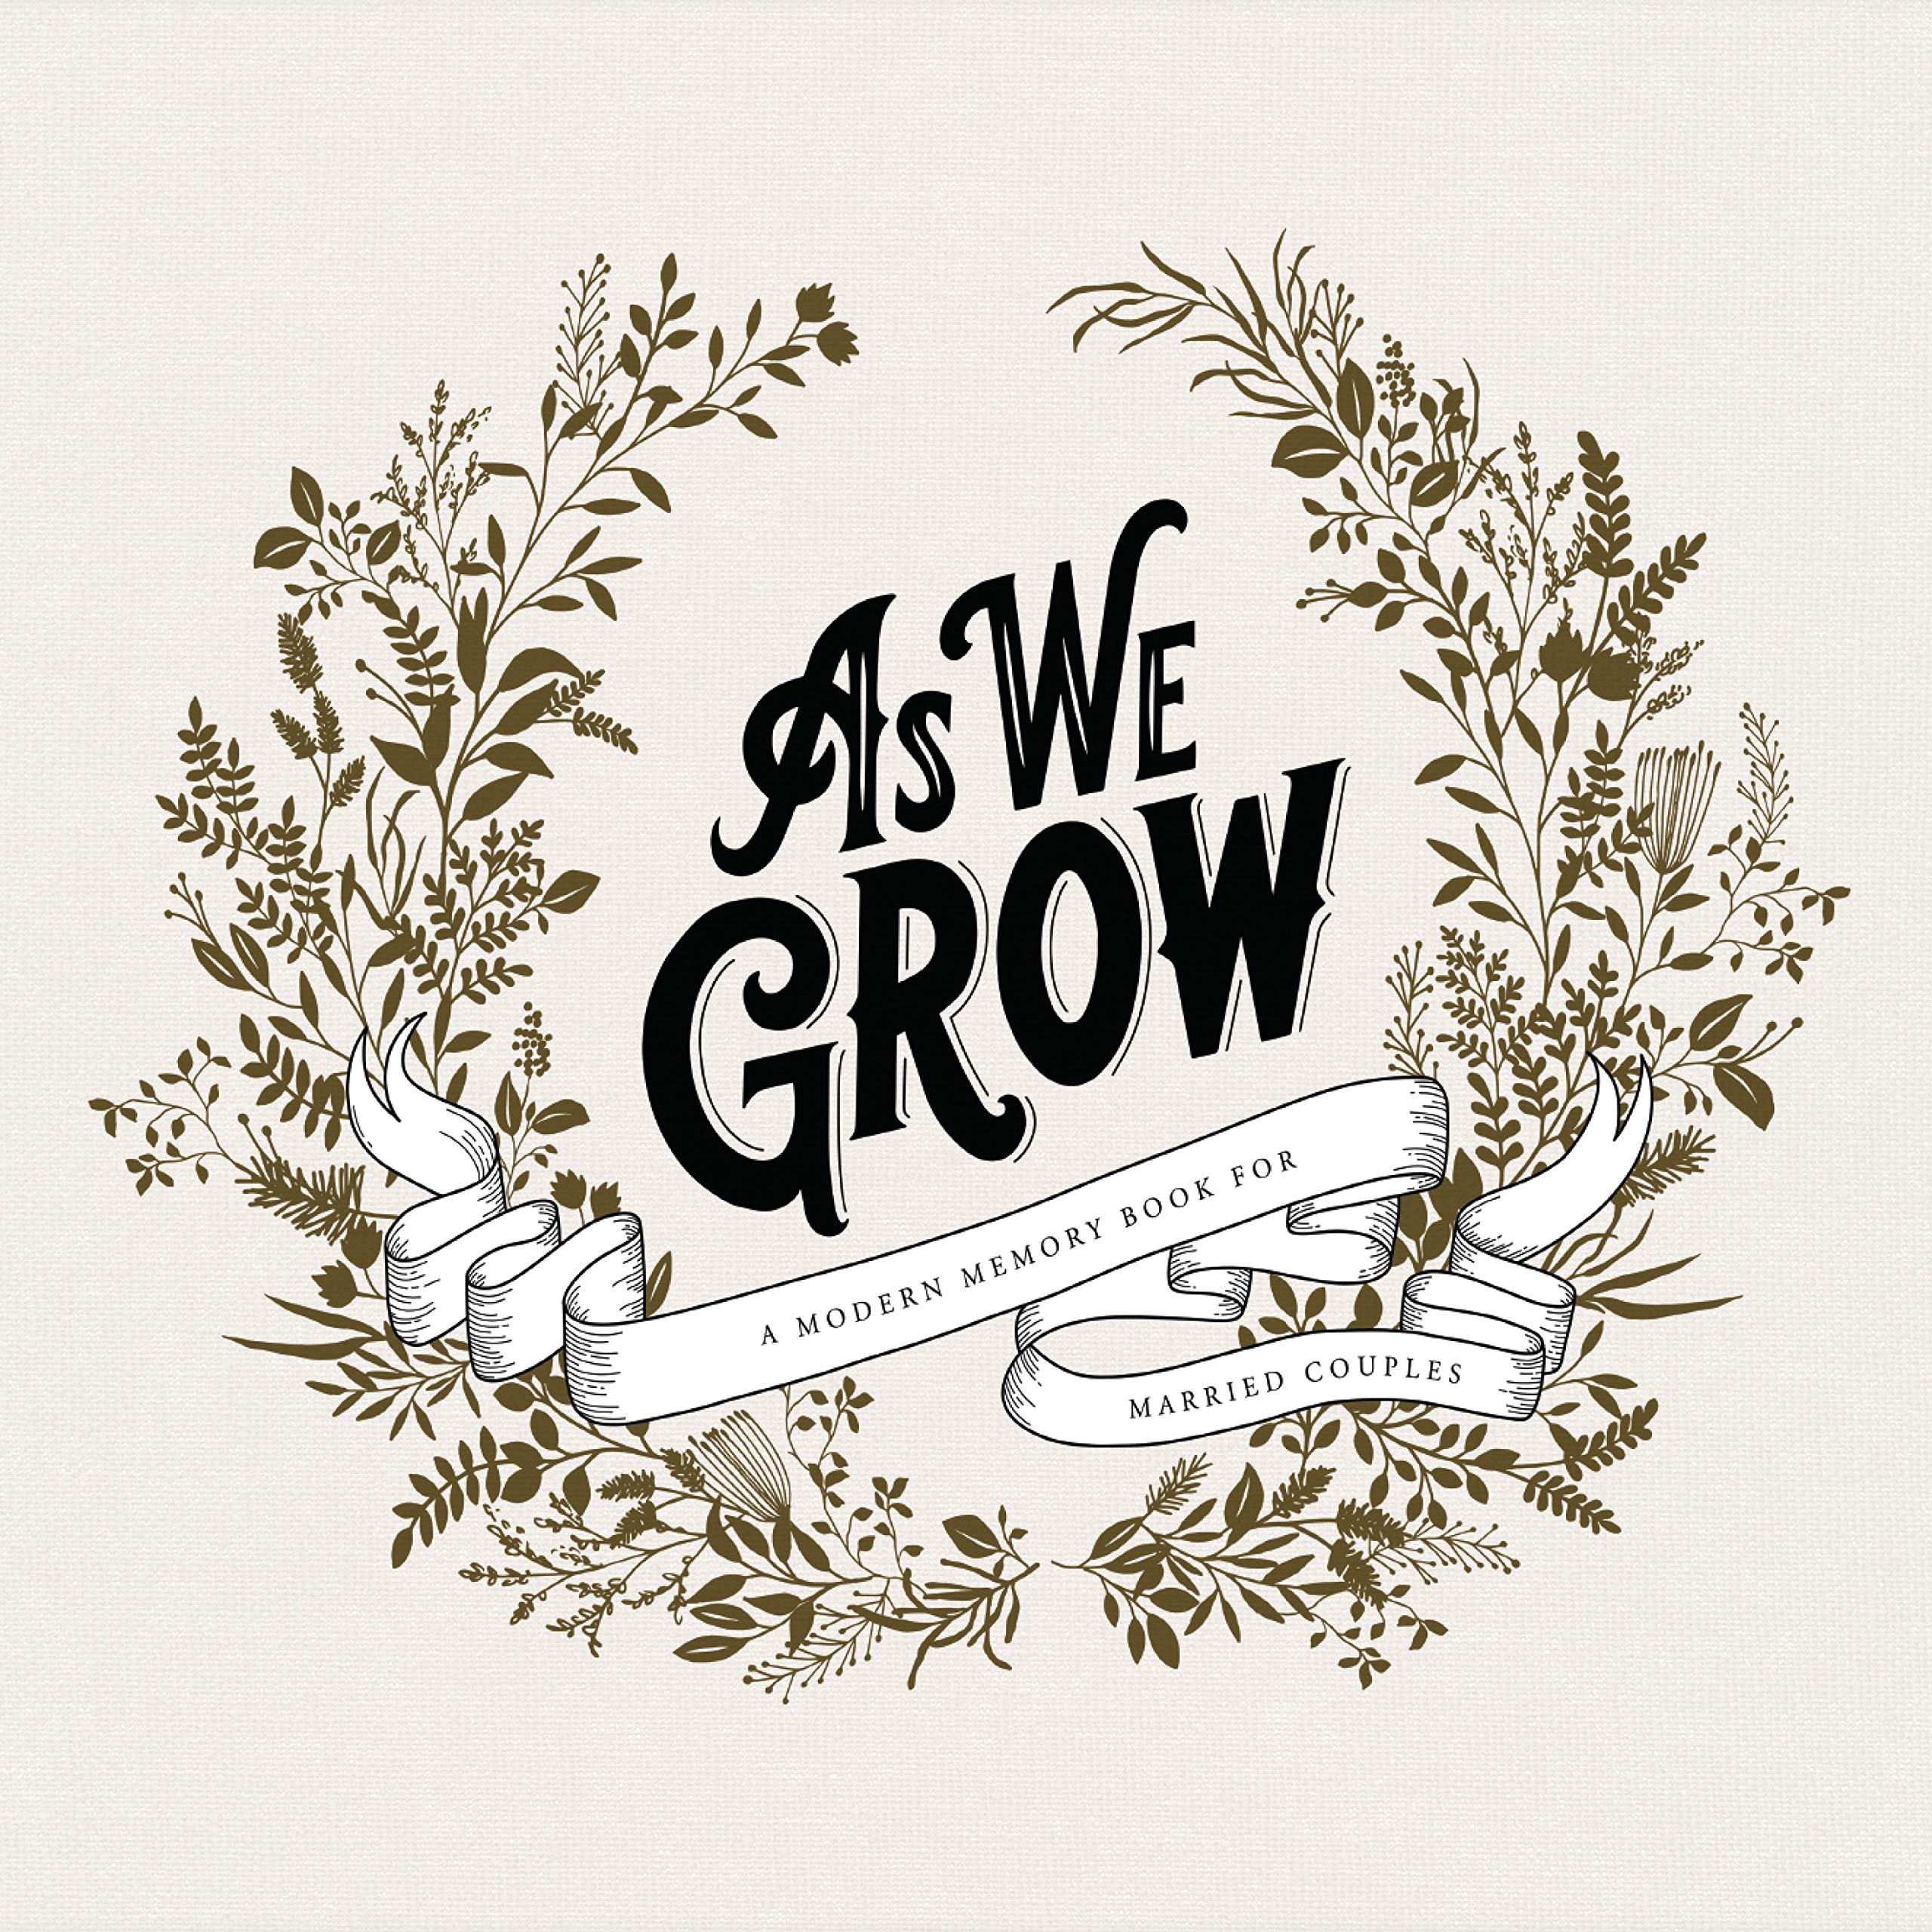 As We Grow: A Modern Memory Book for Married Couples by Blue Star Press